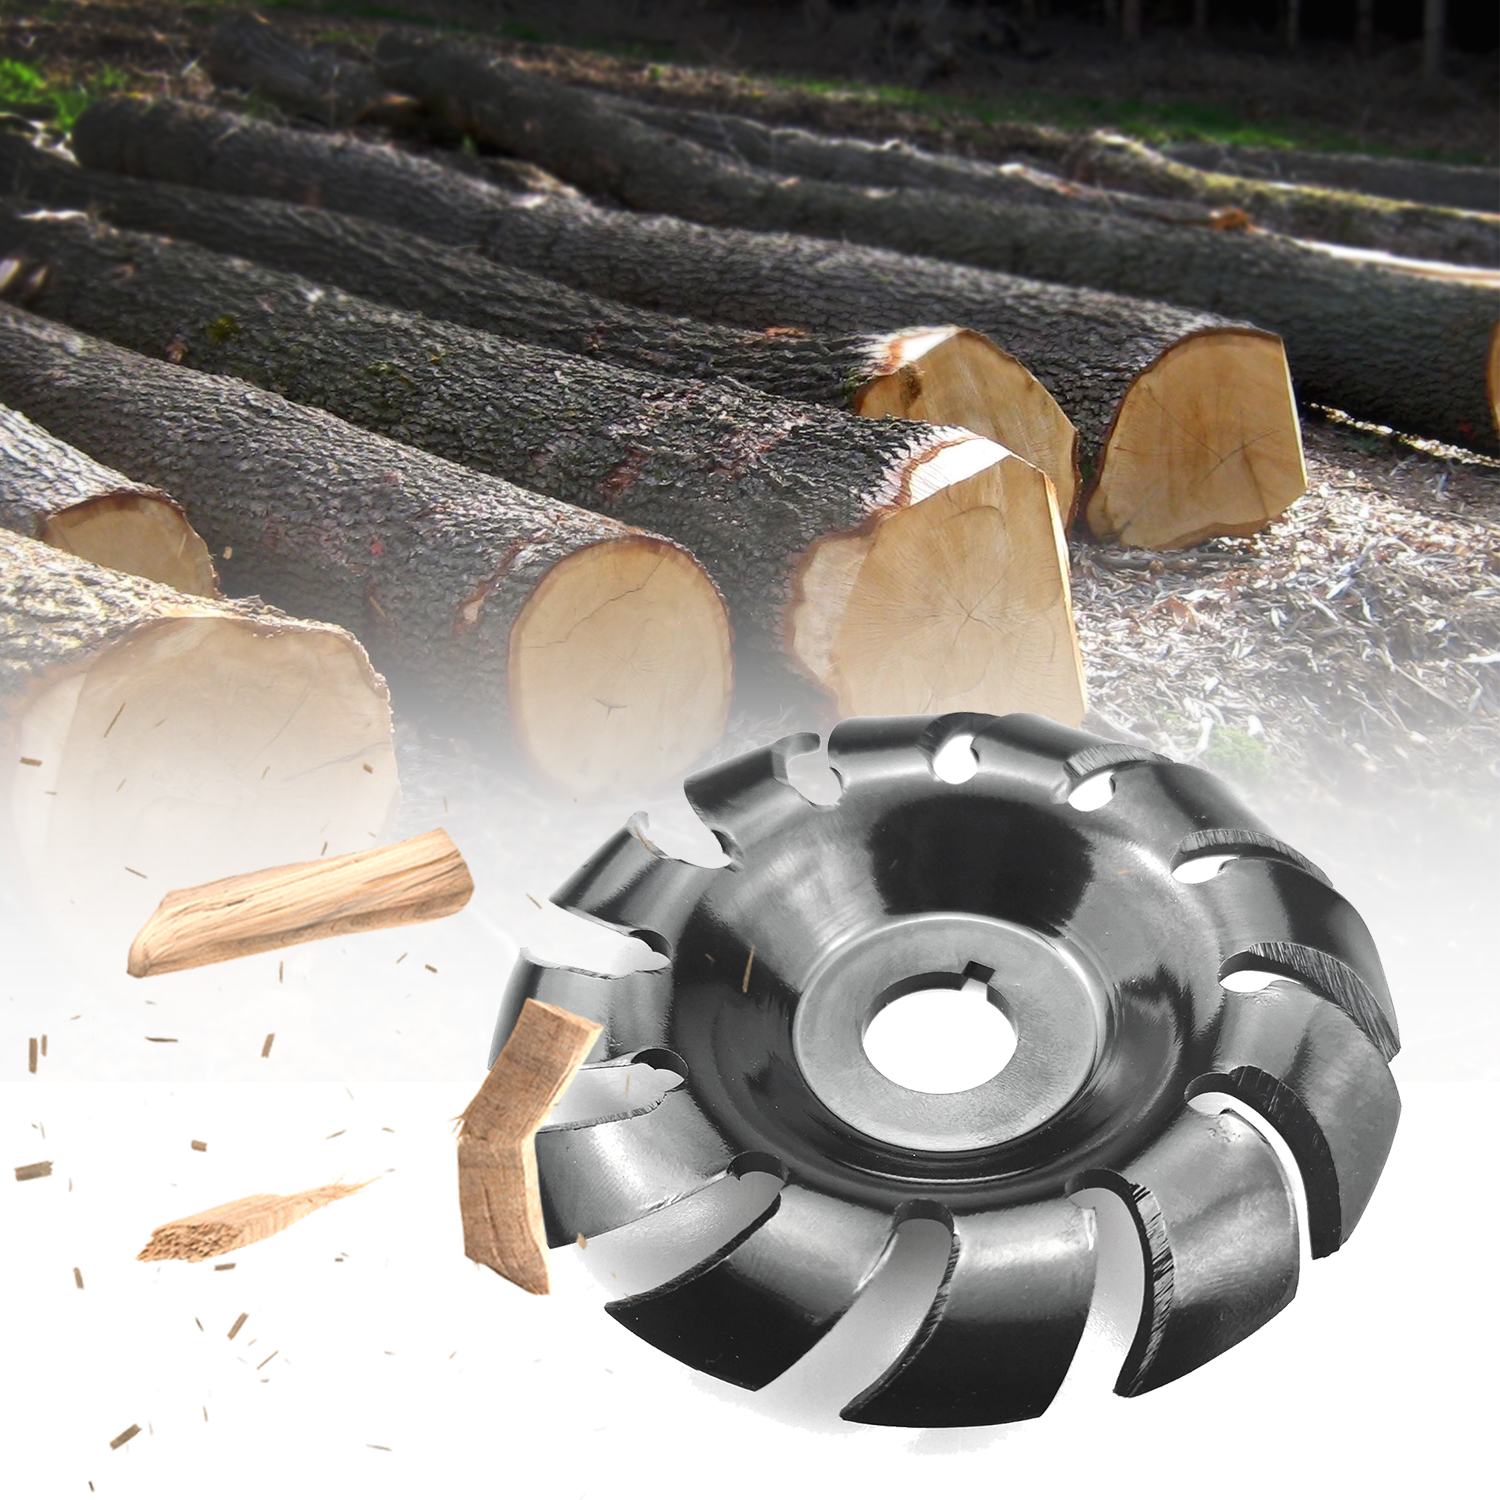 90mm Grinder Shaping Disc 16mm Bore 12 Teeth Tungsten Grinder for 100//115 Angle Grinder Disc Woodworking Tools Silver Wood Carving Disc for Angle Grinder